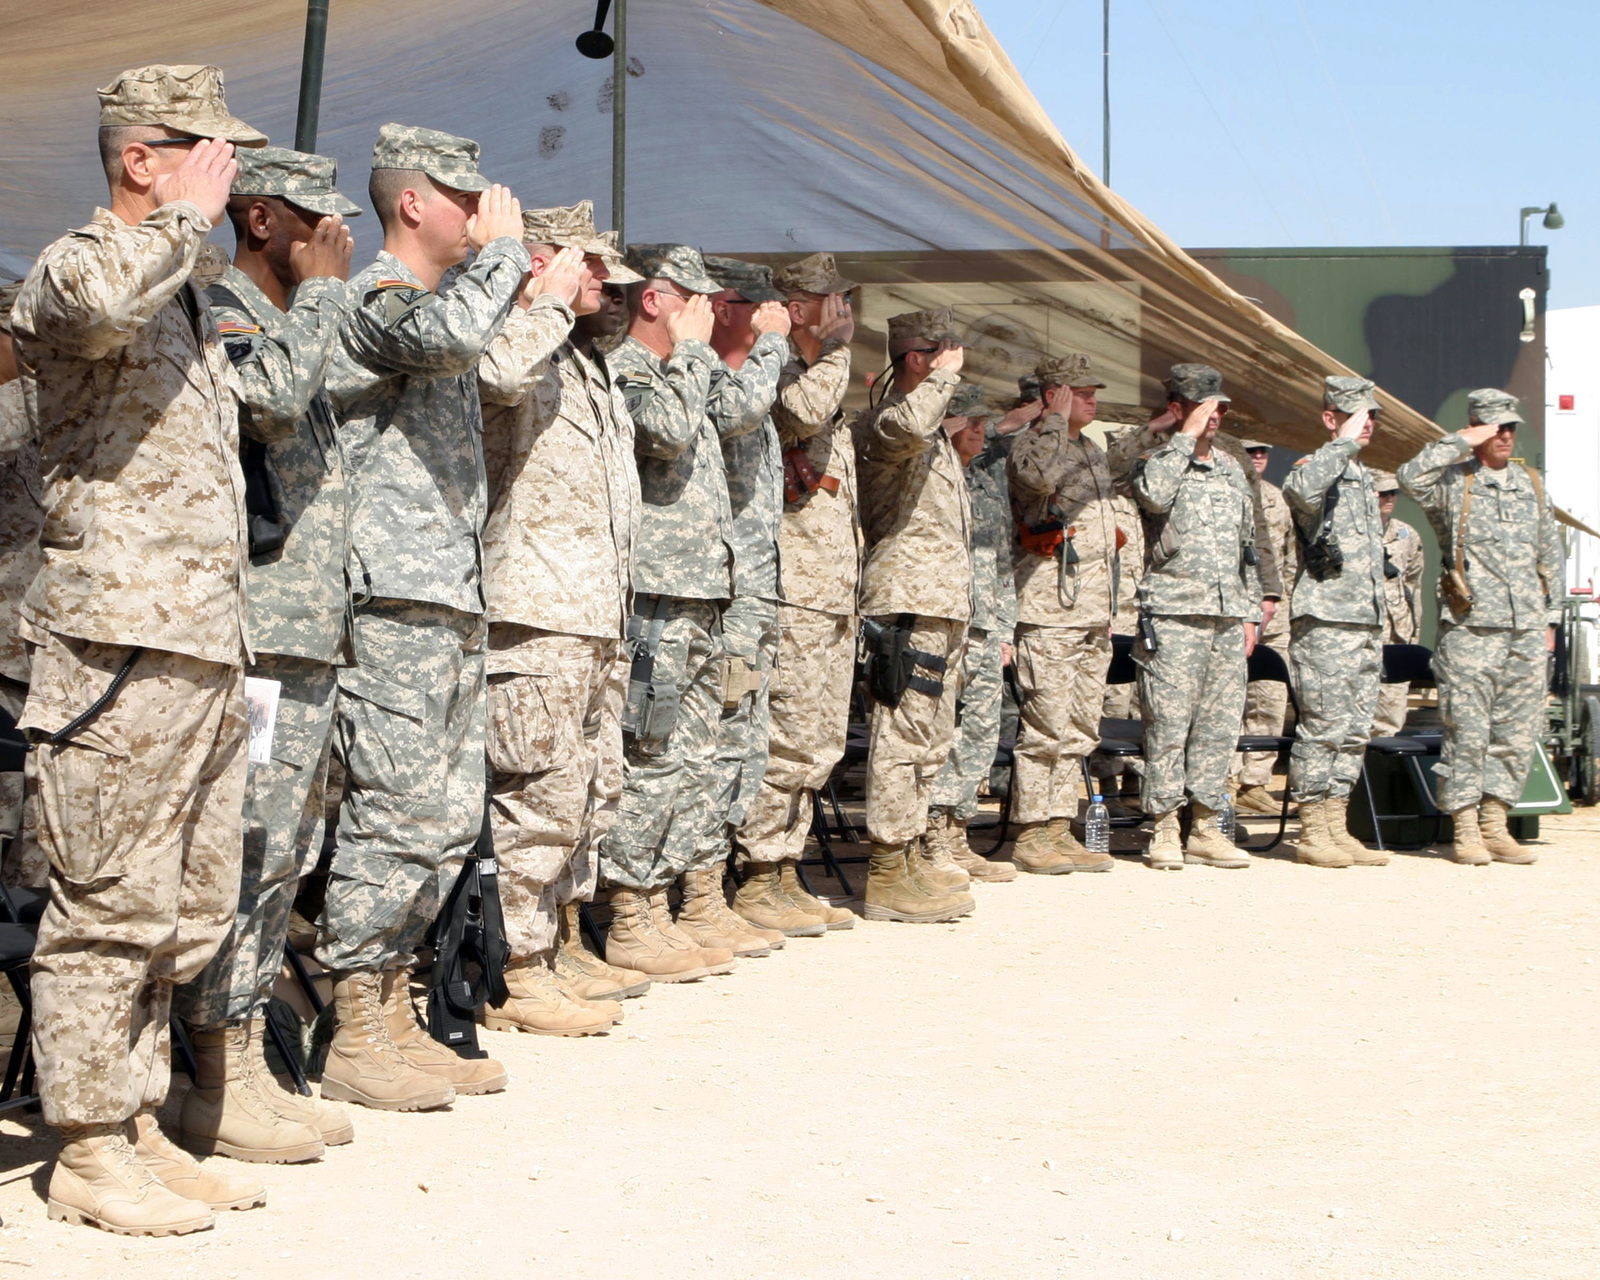 March 9, 2007, Service members in attendance salute during the playing of the National Anthem at the end of the Multi- National Force Hospital Ribbon Cutting Ceremony on Asad Air Base, Iraq. Task Force 3 3rd Medical Command is deployed as a part of MNF-W in support of Operation Iraqi Freedom in the Anbar province of Iraq to develop the Iraqi Security Forces, facilitate the development of official rule of law through democratic government reforms and continue the development of a market based economy centered on Iraqi reconstruction. (Official USMC photograph by SGT Andrew D. Pendracki) (Released)